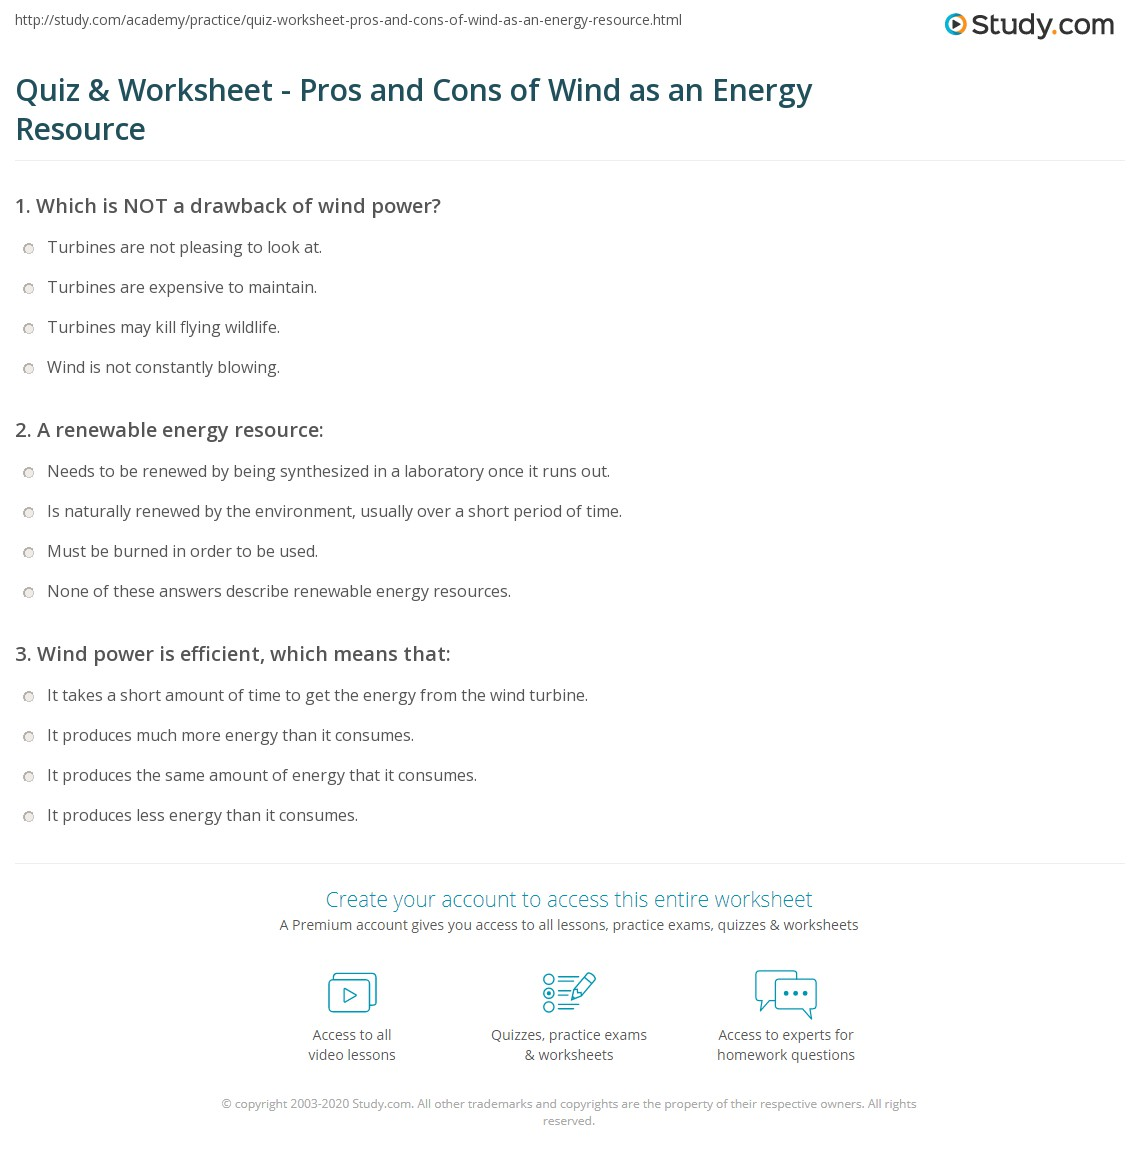 Quiz & Worksheet - Pros and Cons of Wind as an Energy Resource